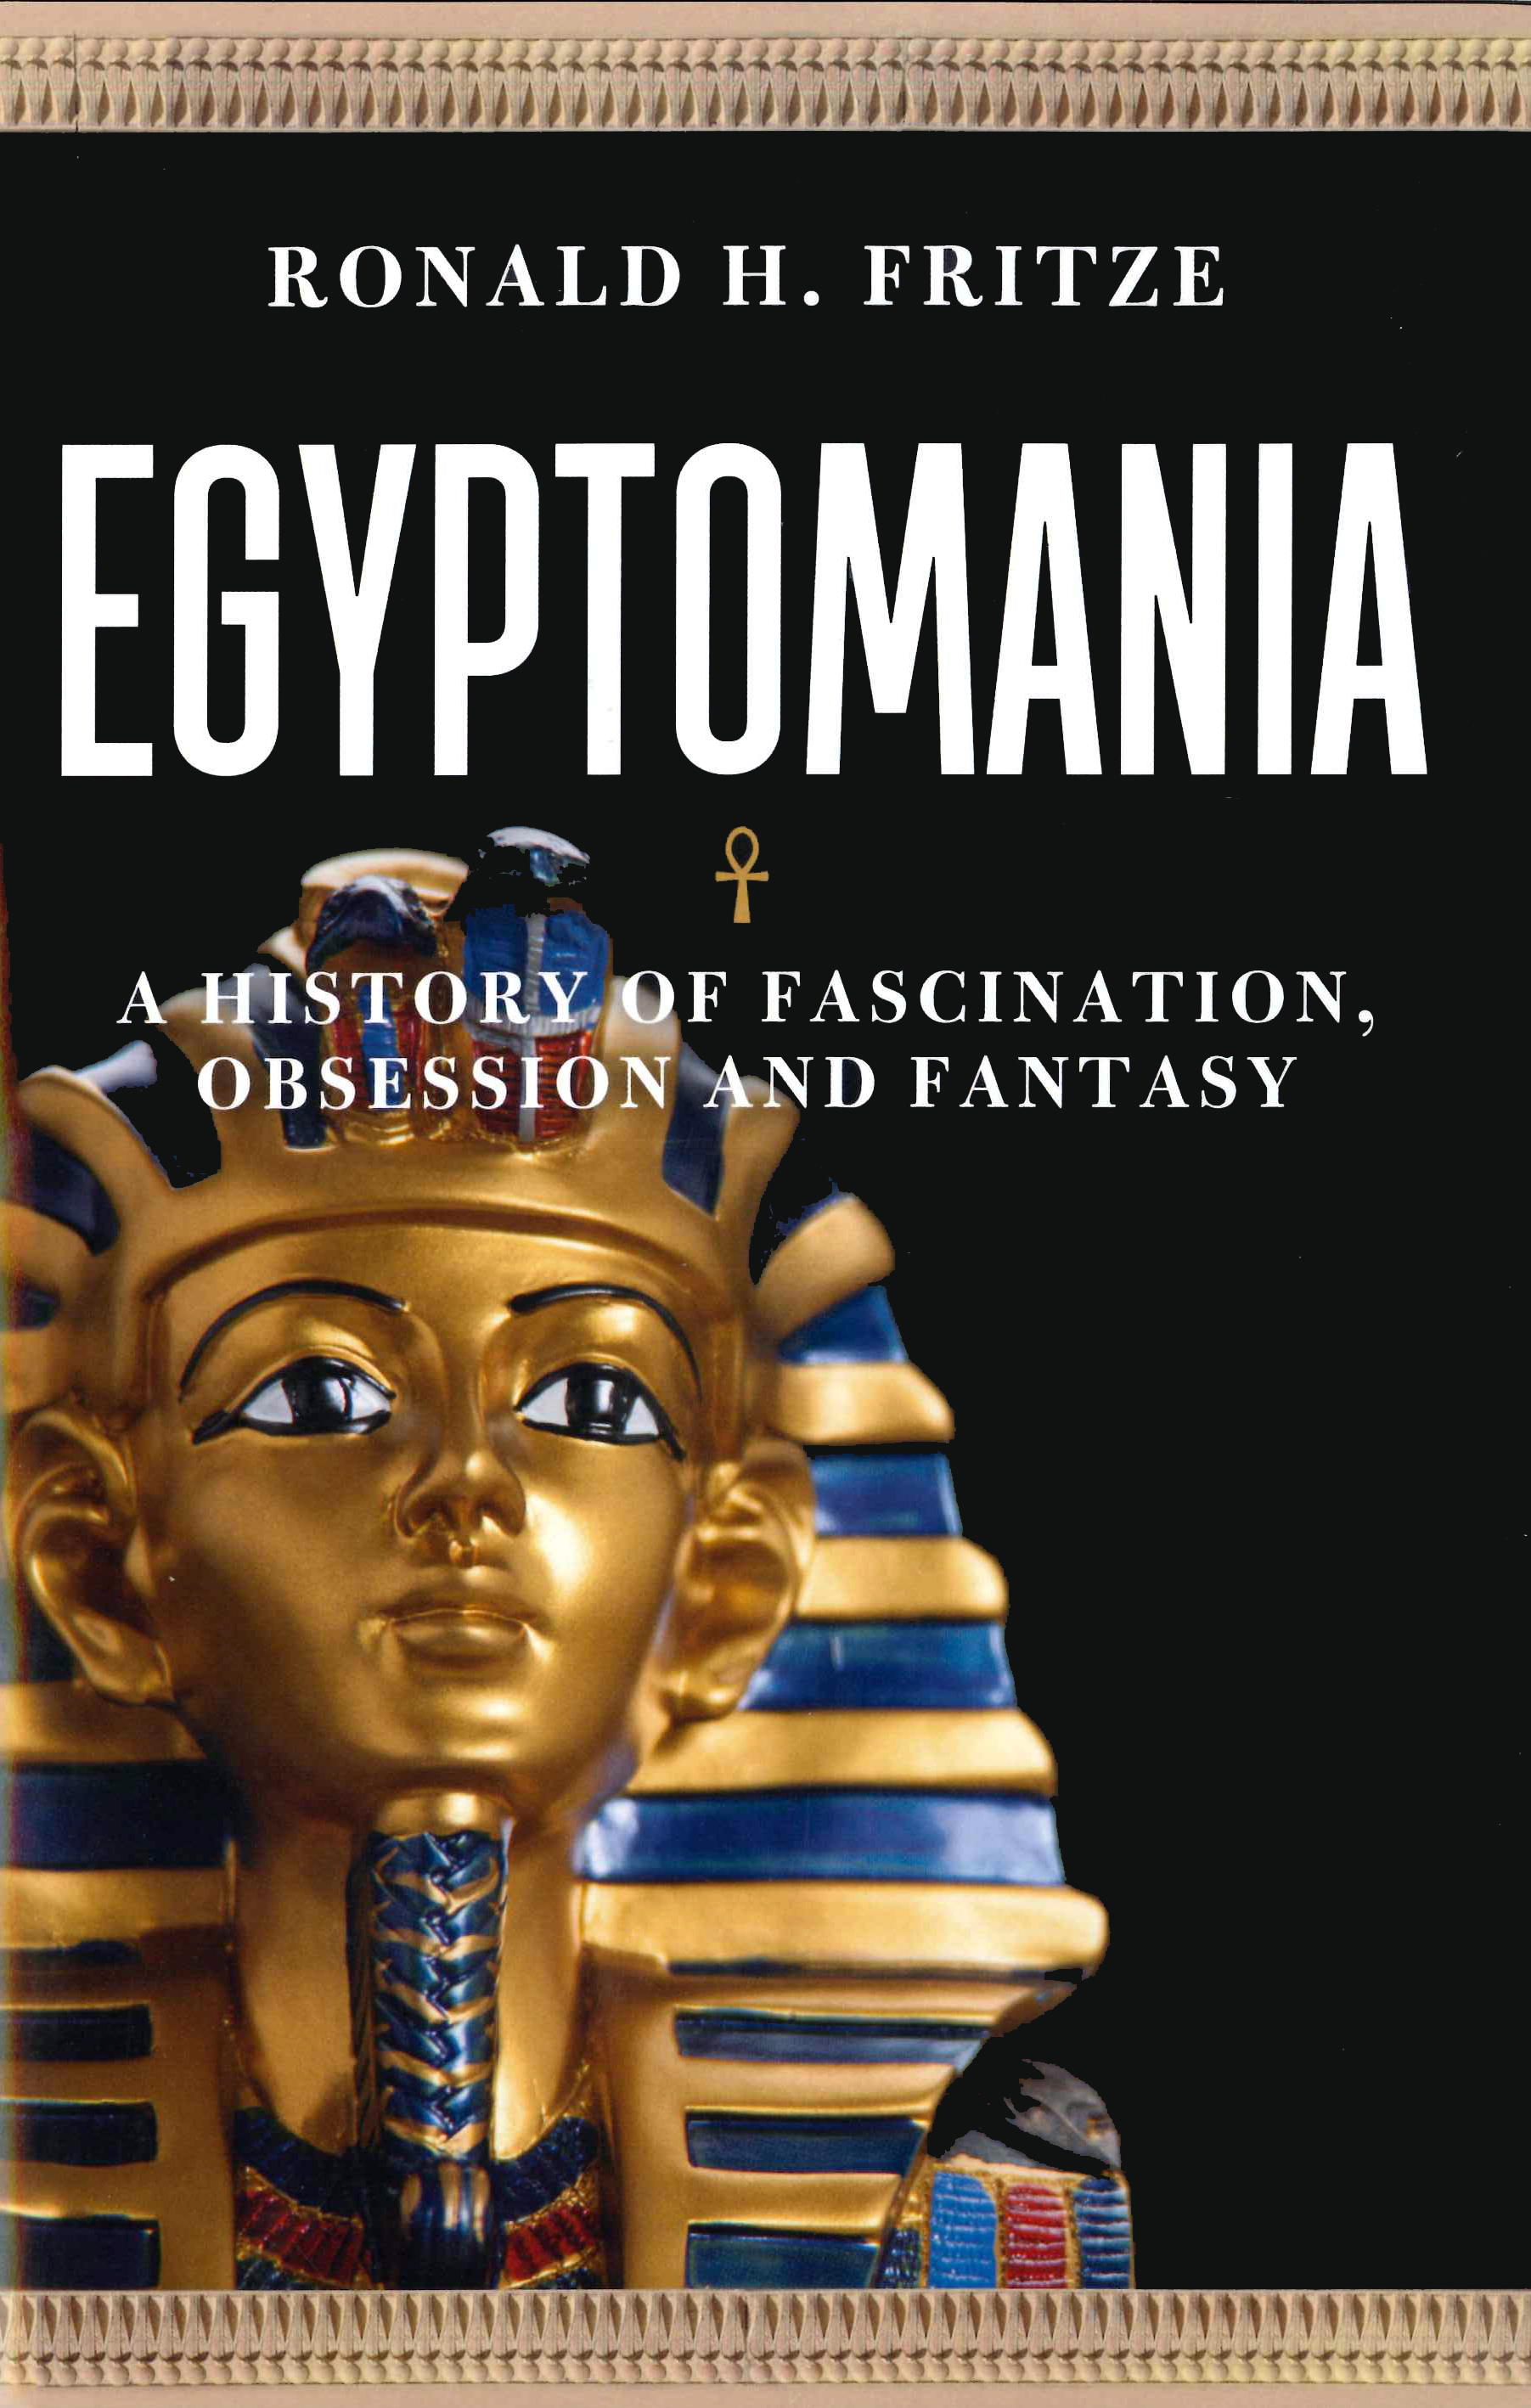 Egyptomania: A History of Fascination, Obsession, and Fantasy